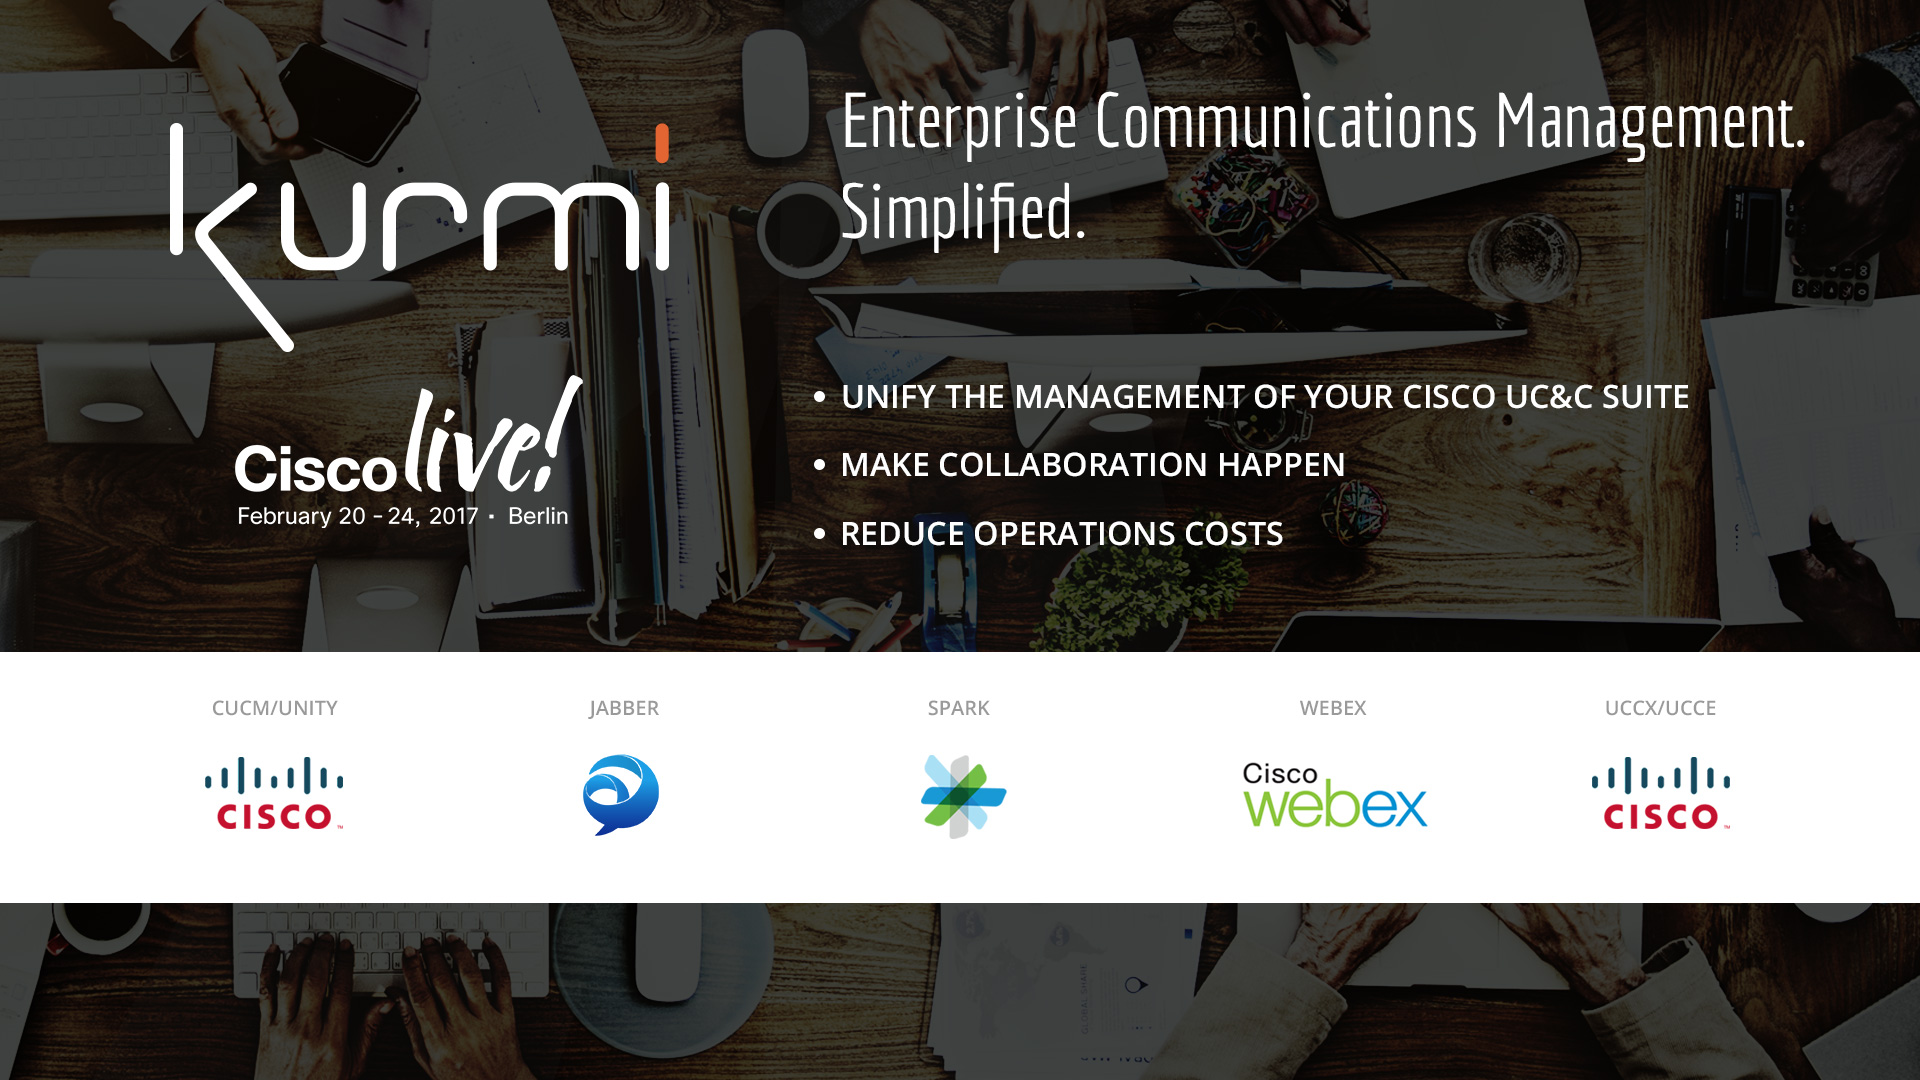 Kurmi @CiscoLive in Berlin, 20 – 24 Février